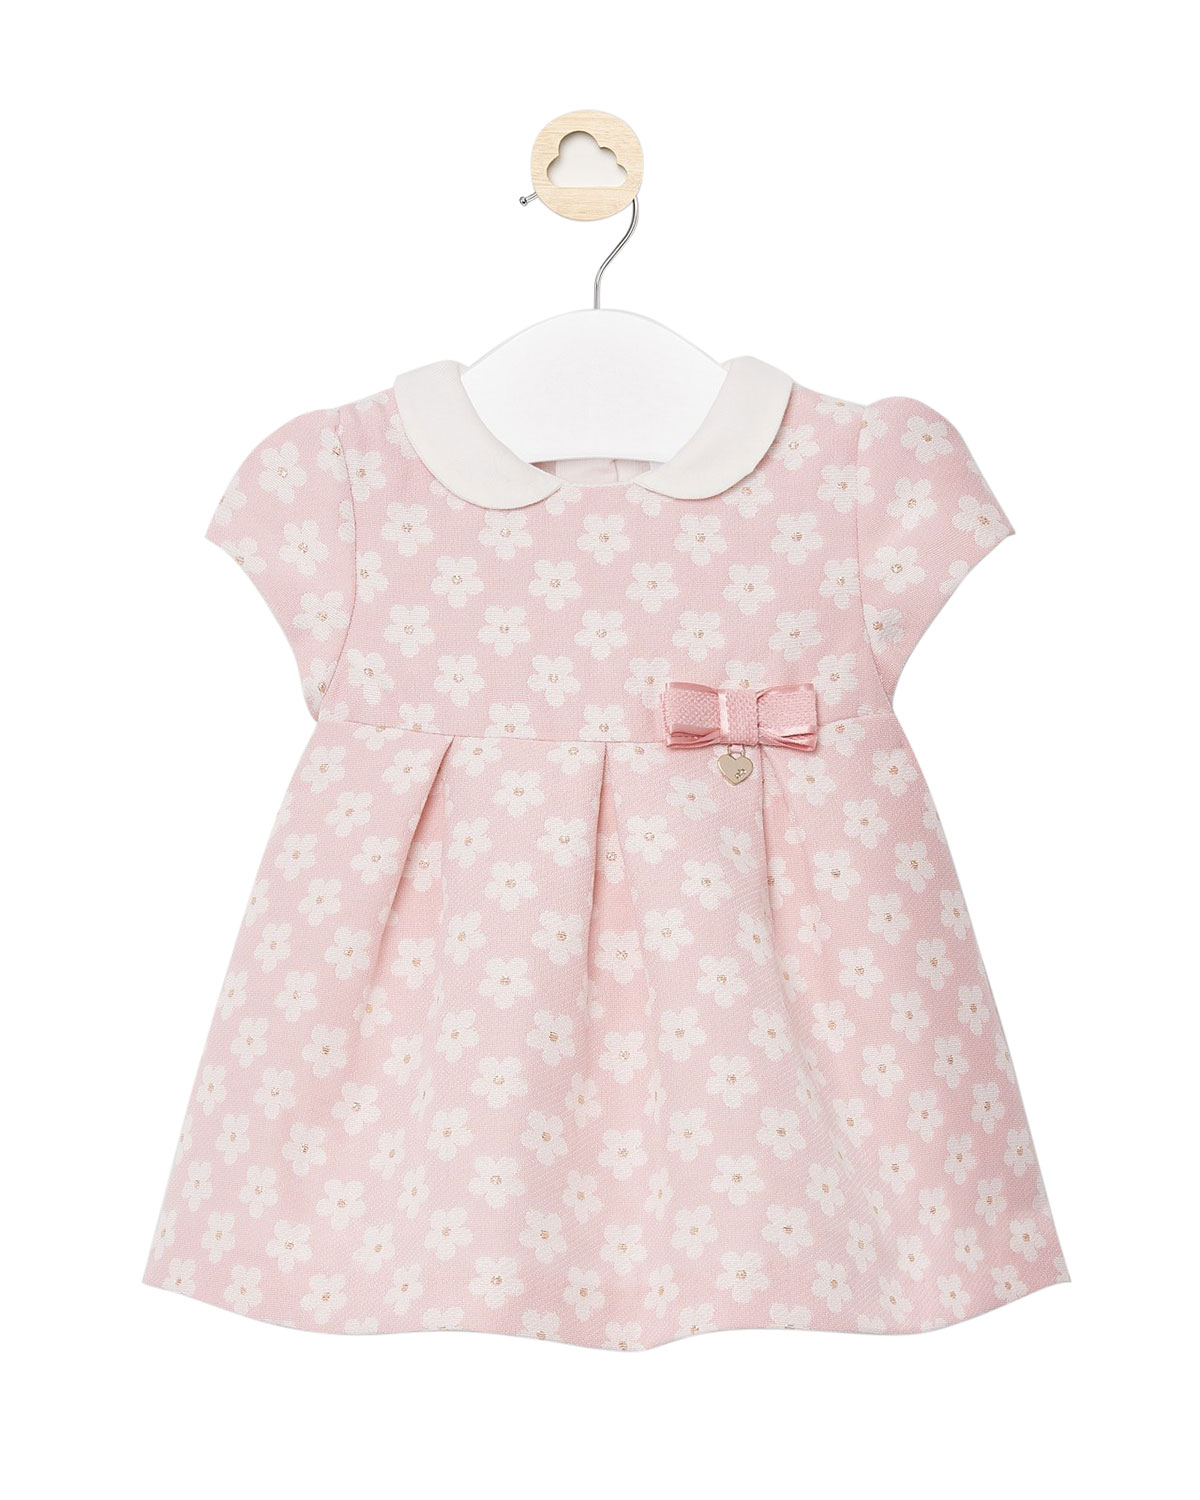 Mayoral Girl's Floral Bow Gathered Dress, Size 4-18 Months